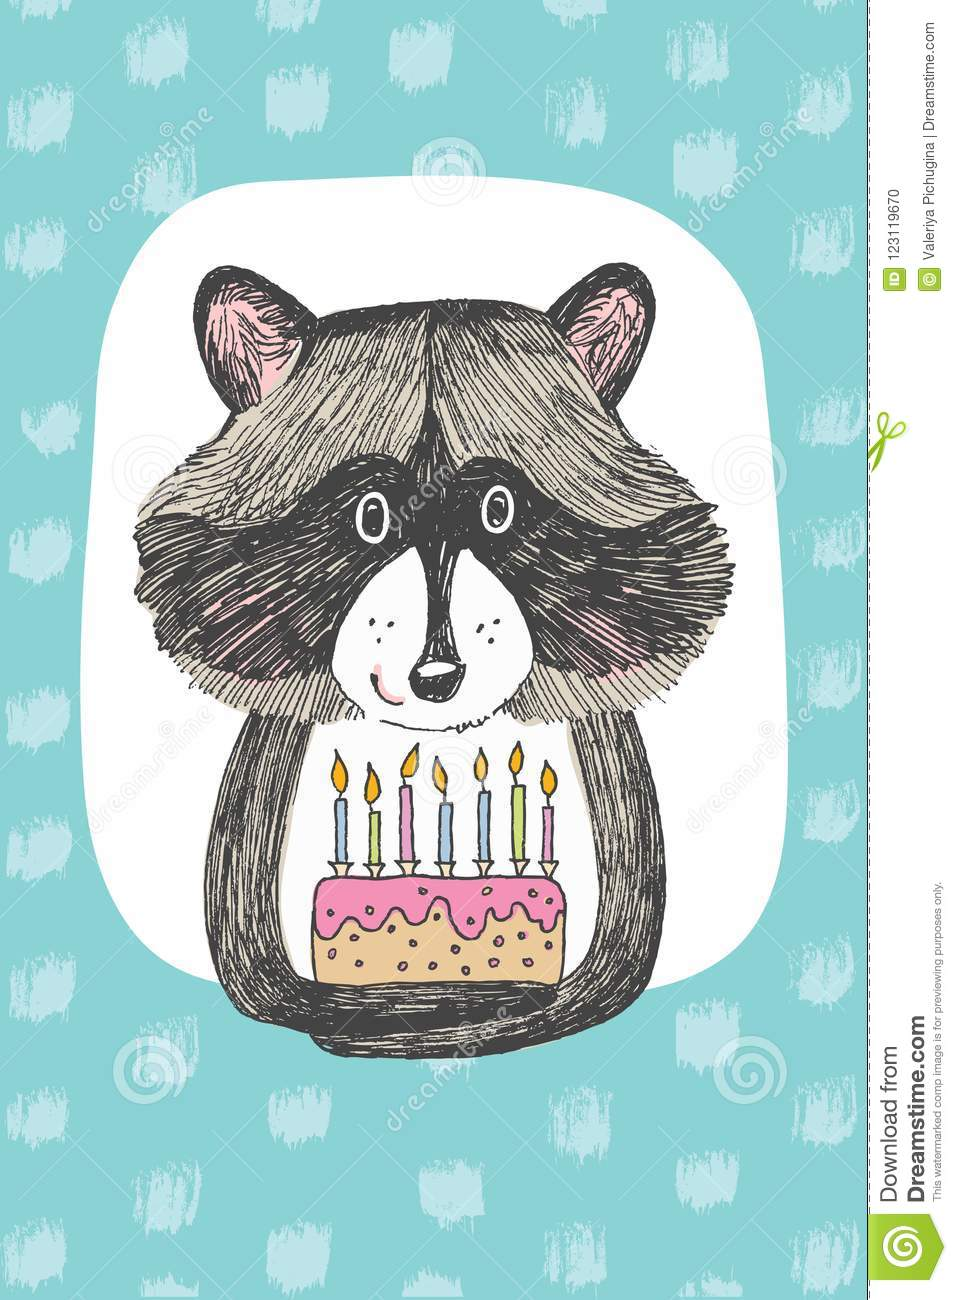 Greeting card design with cute raccoon keeps a cake happy birthday download greeting card design with cute raccoon keeps a cake happy birthday invitation template with m4hsunfo